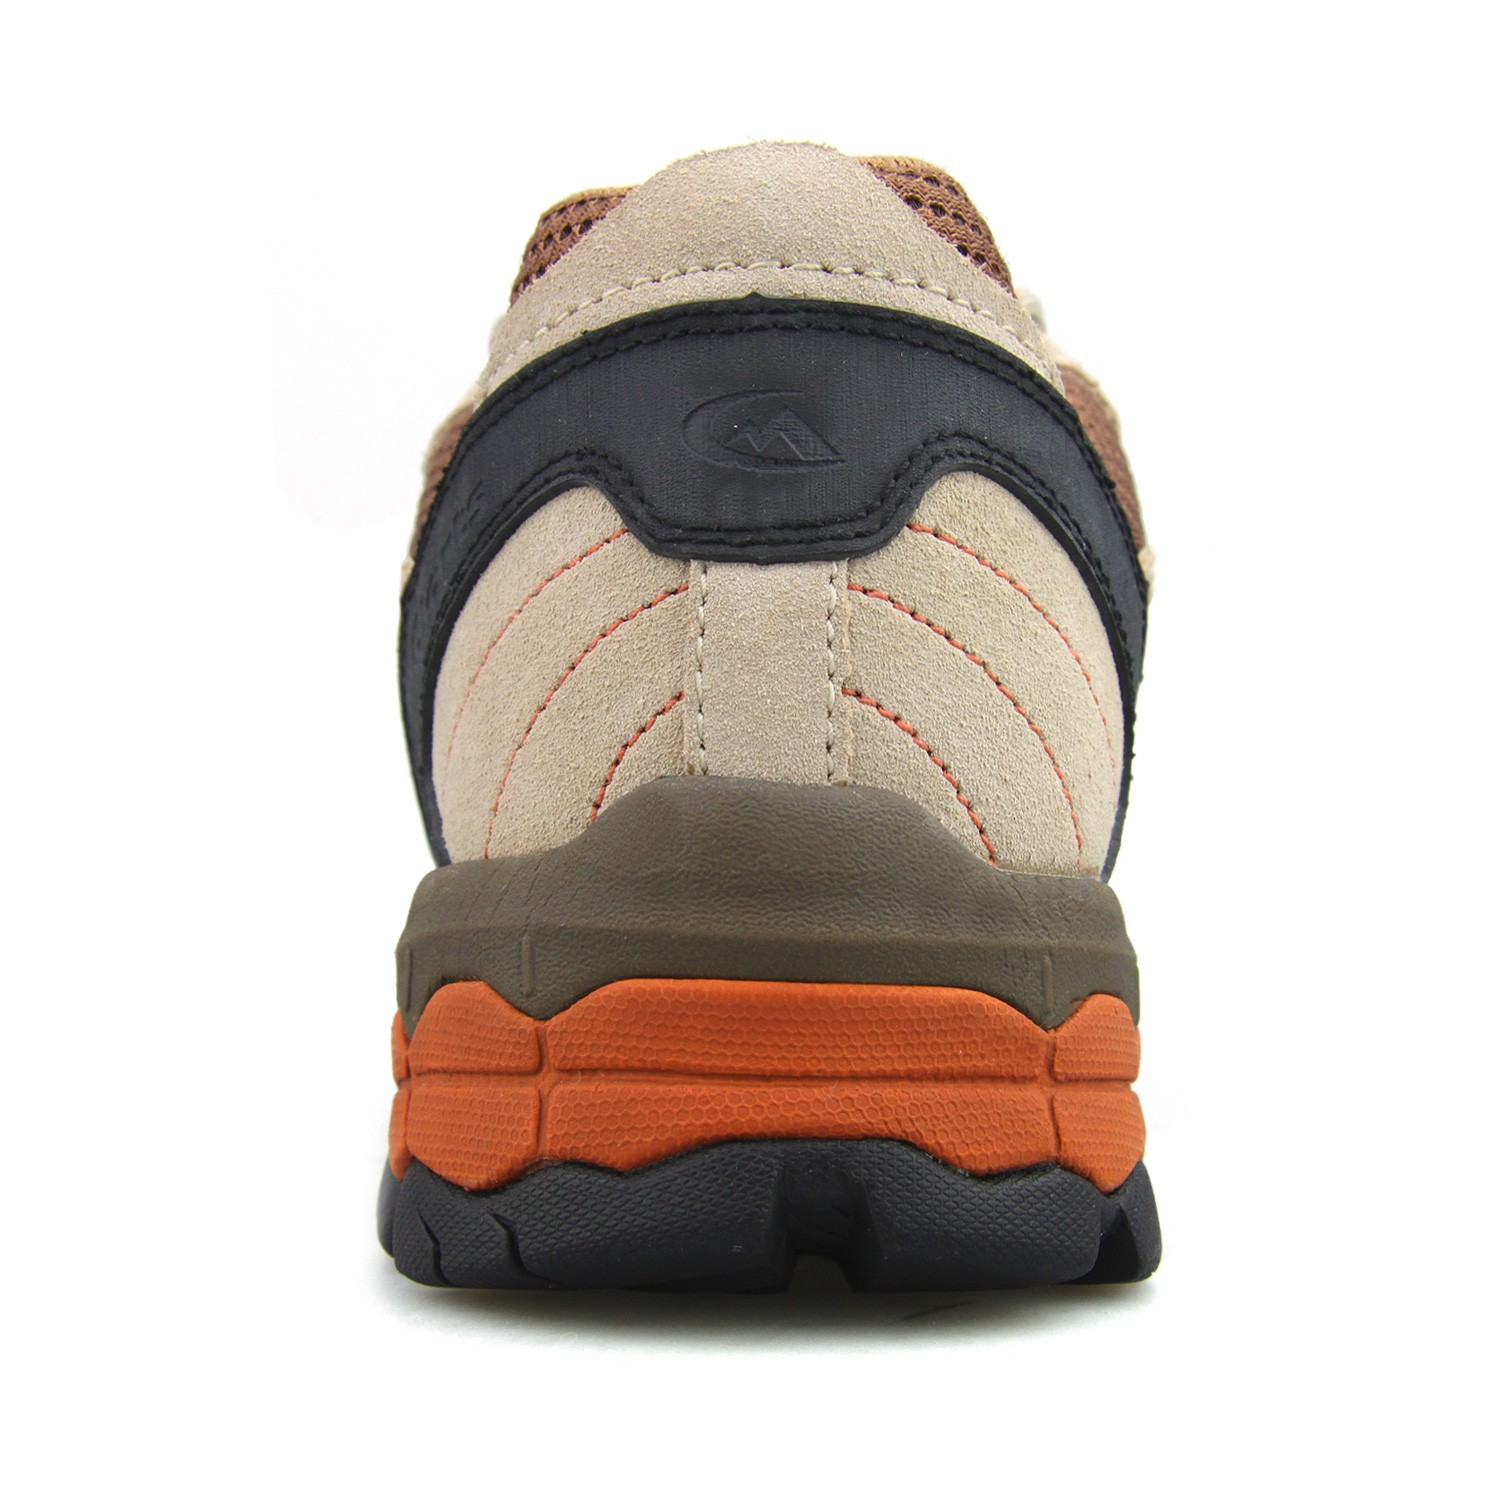 Mens Running Lightweight Shoes Manufacturers, Mens Running Lightweight Shoes Factory, Supply Mens Running Lightweight Shoes